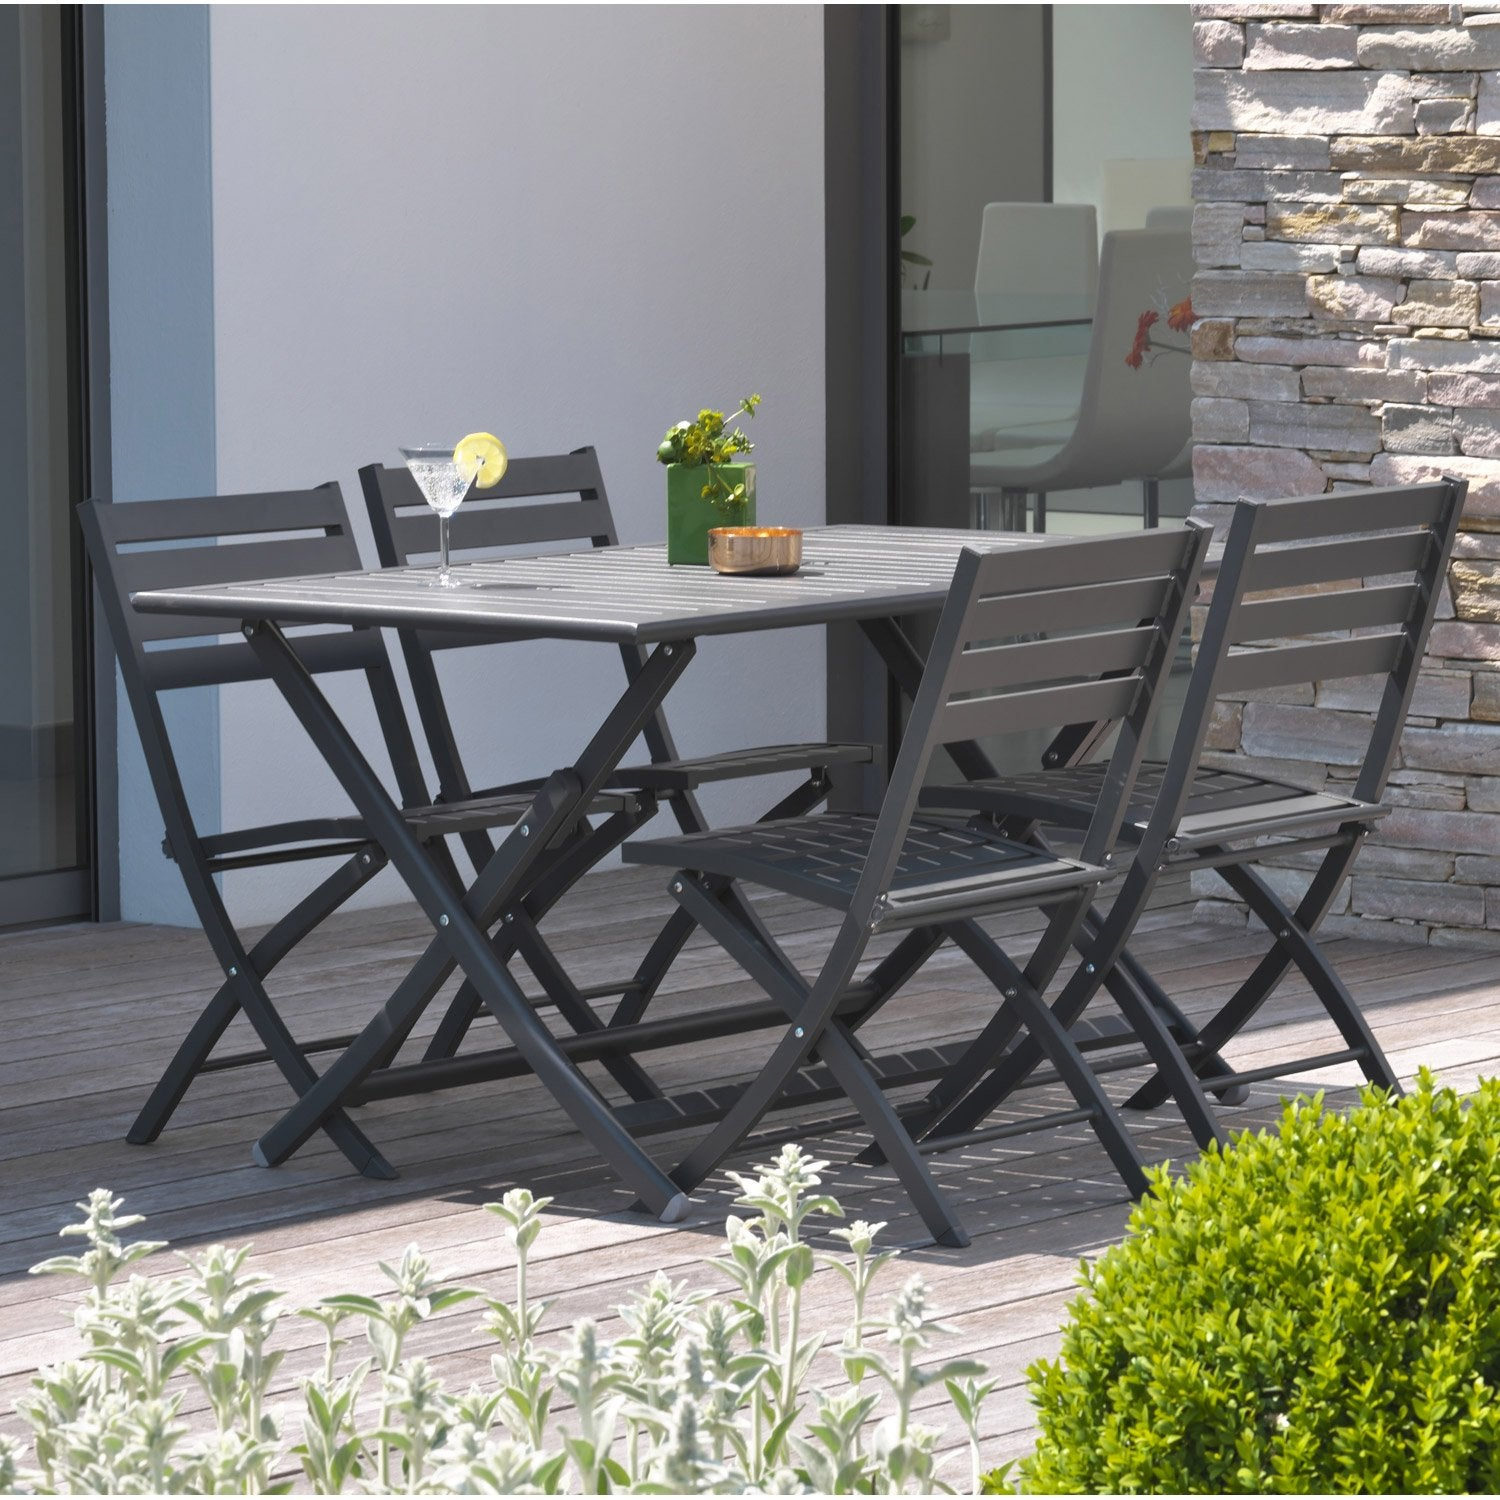 Salon de jardin marius gris anthracite 4 personnes for Salon de jardin plastique gris